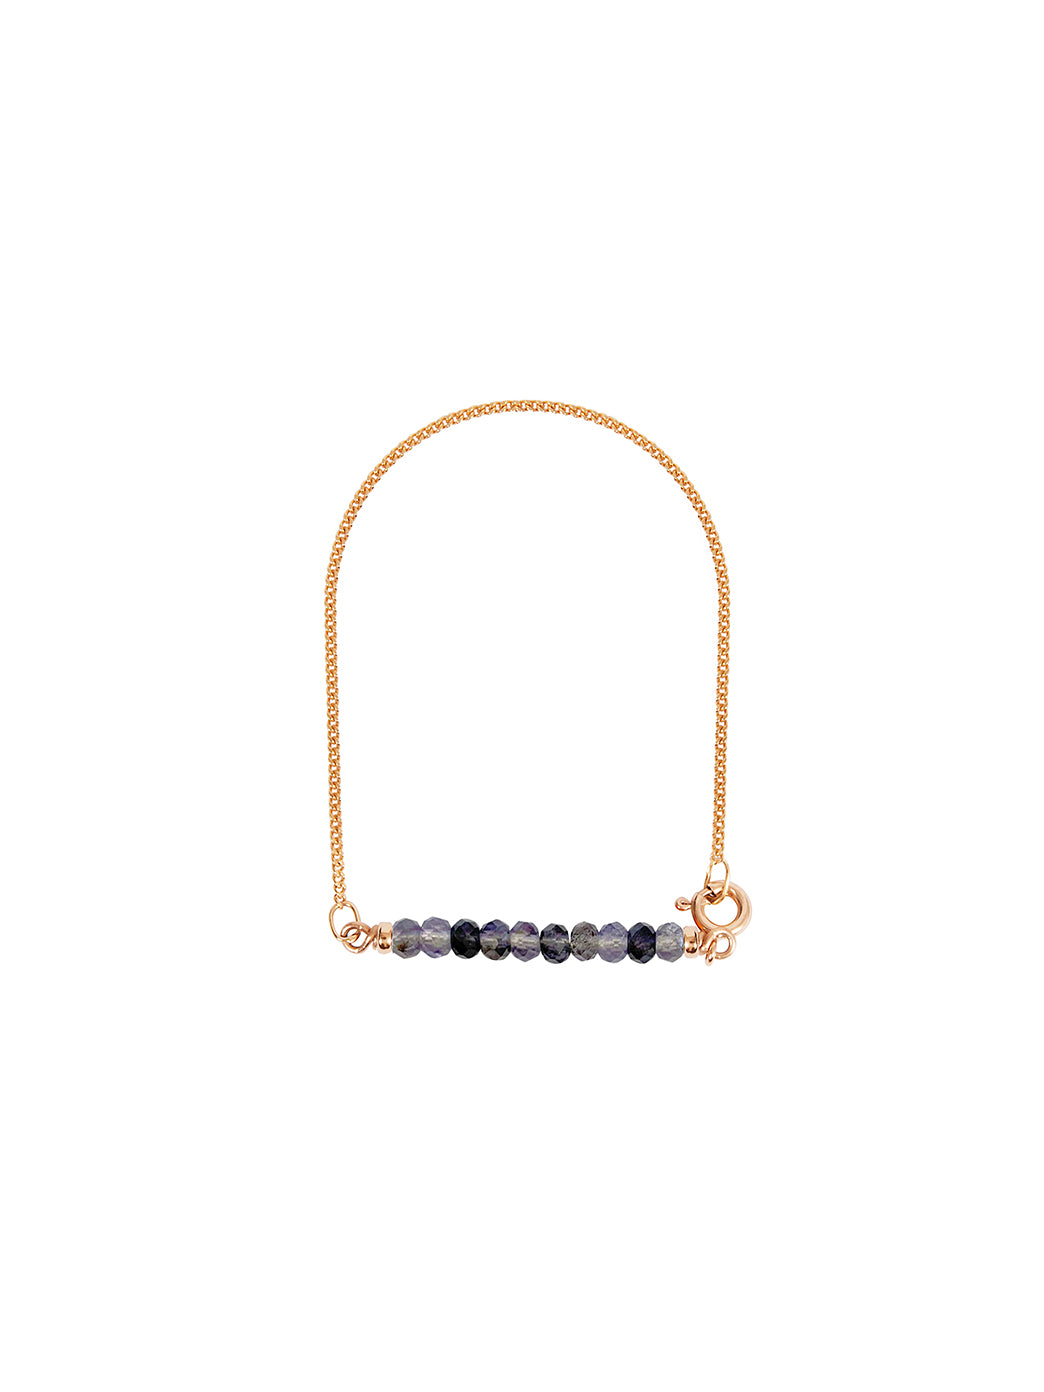 Fiorina Jewellery Gold Friendship Bracelet Iolite